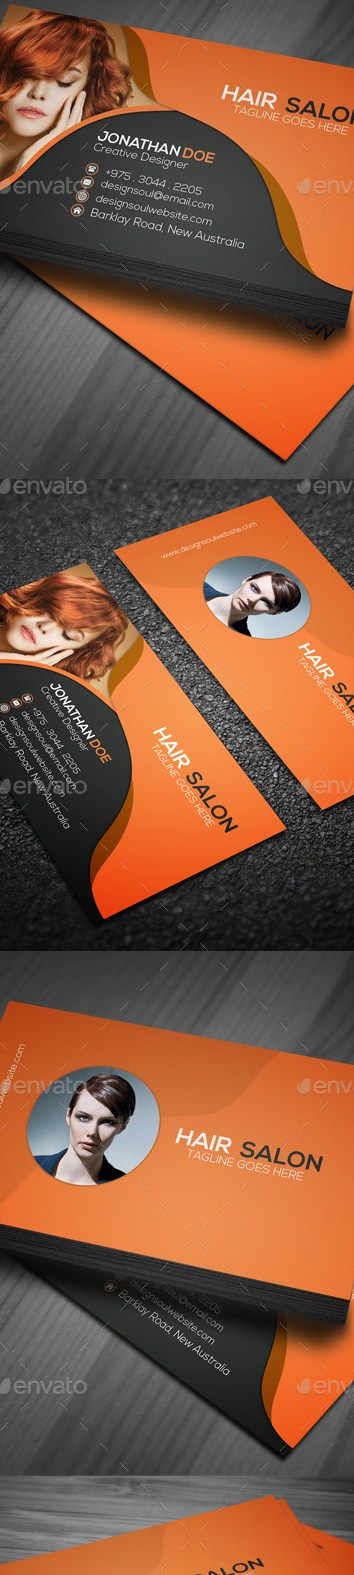 Grabs Full Pixels » Hair Salon Business Card by designsoul14   GraphicRiver Hair Salon Business Card   Industry Specific Business Cards